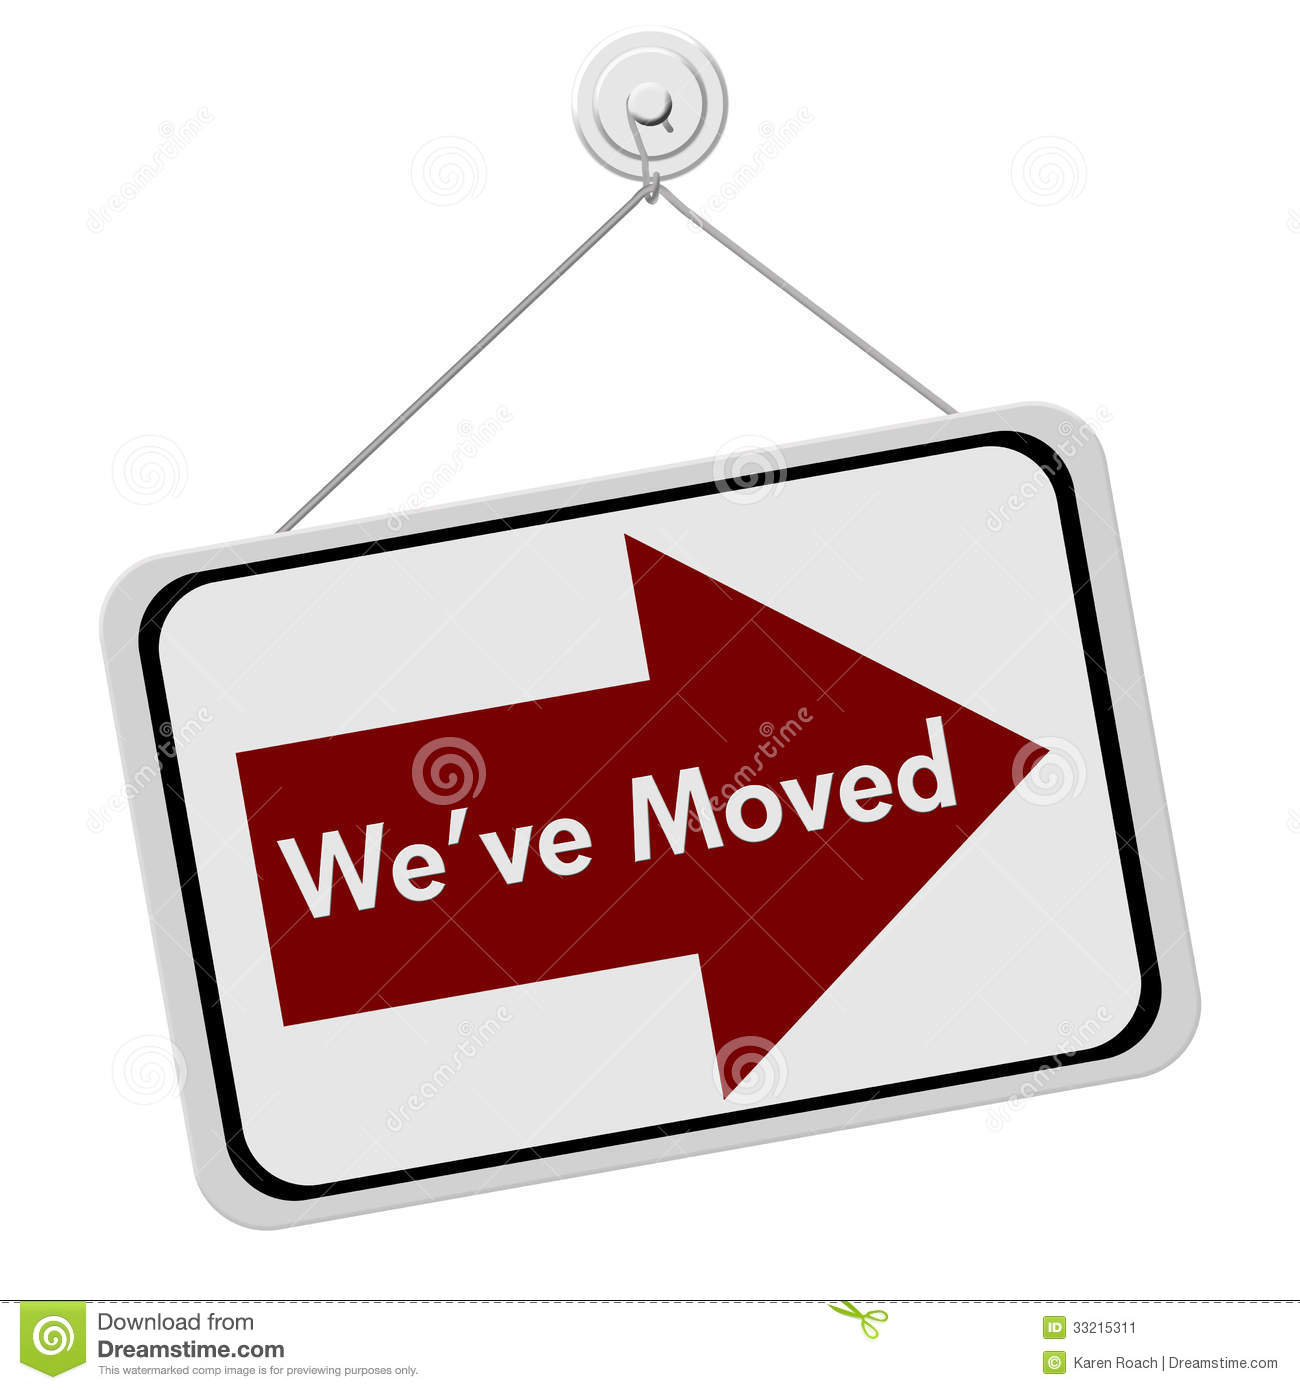 We Have Moved Sign Stock Image - Image: 33215311